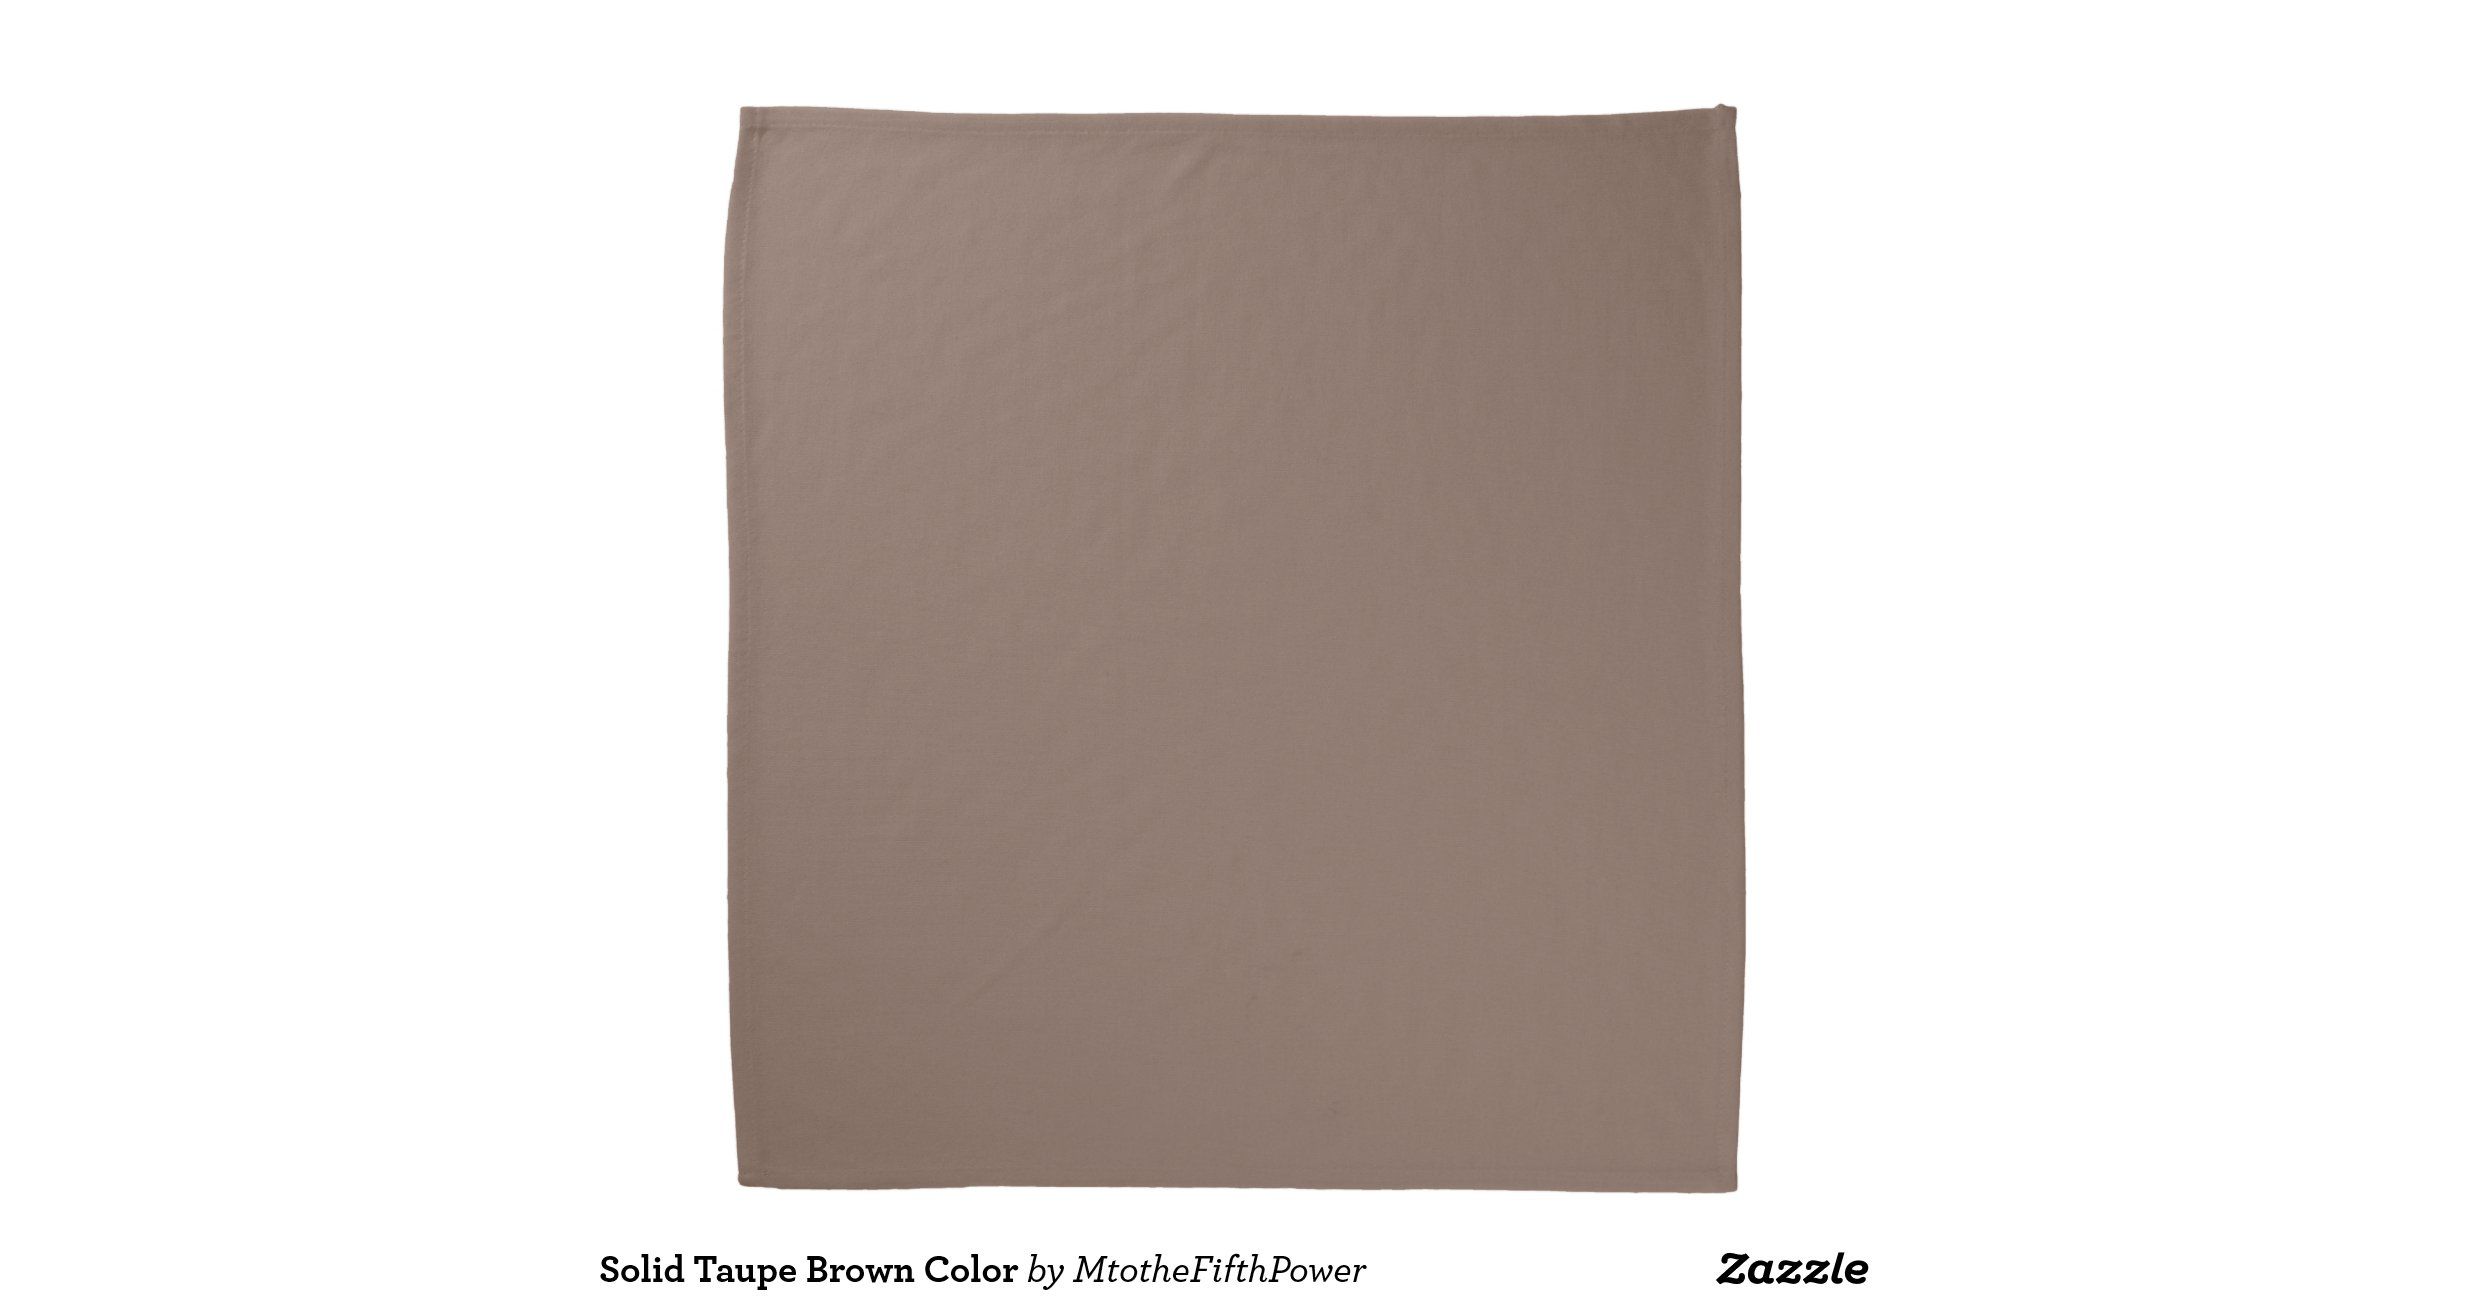 Solid taupe brown color bandana for What color is taupe brown